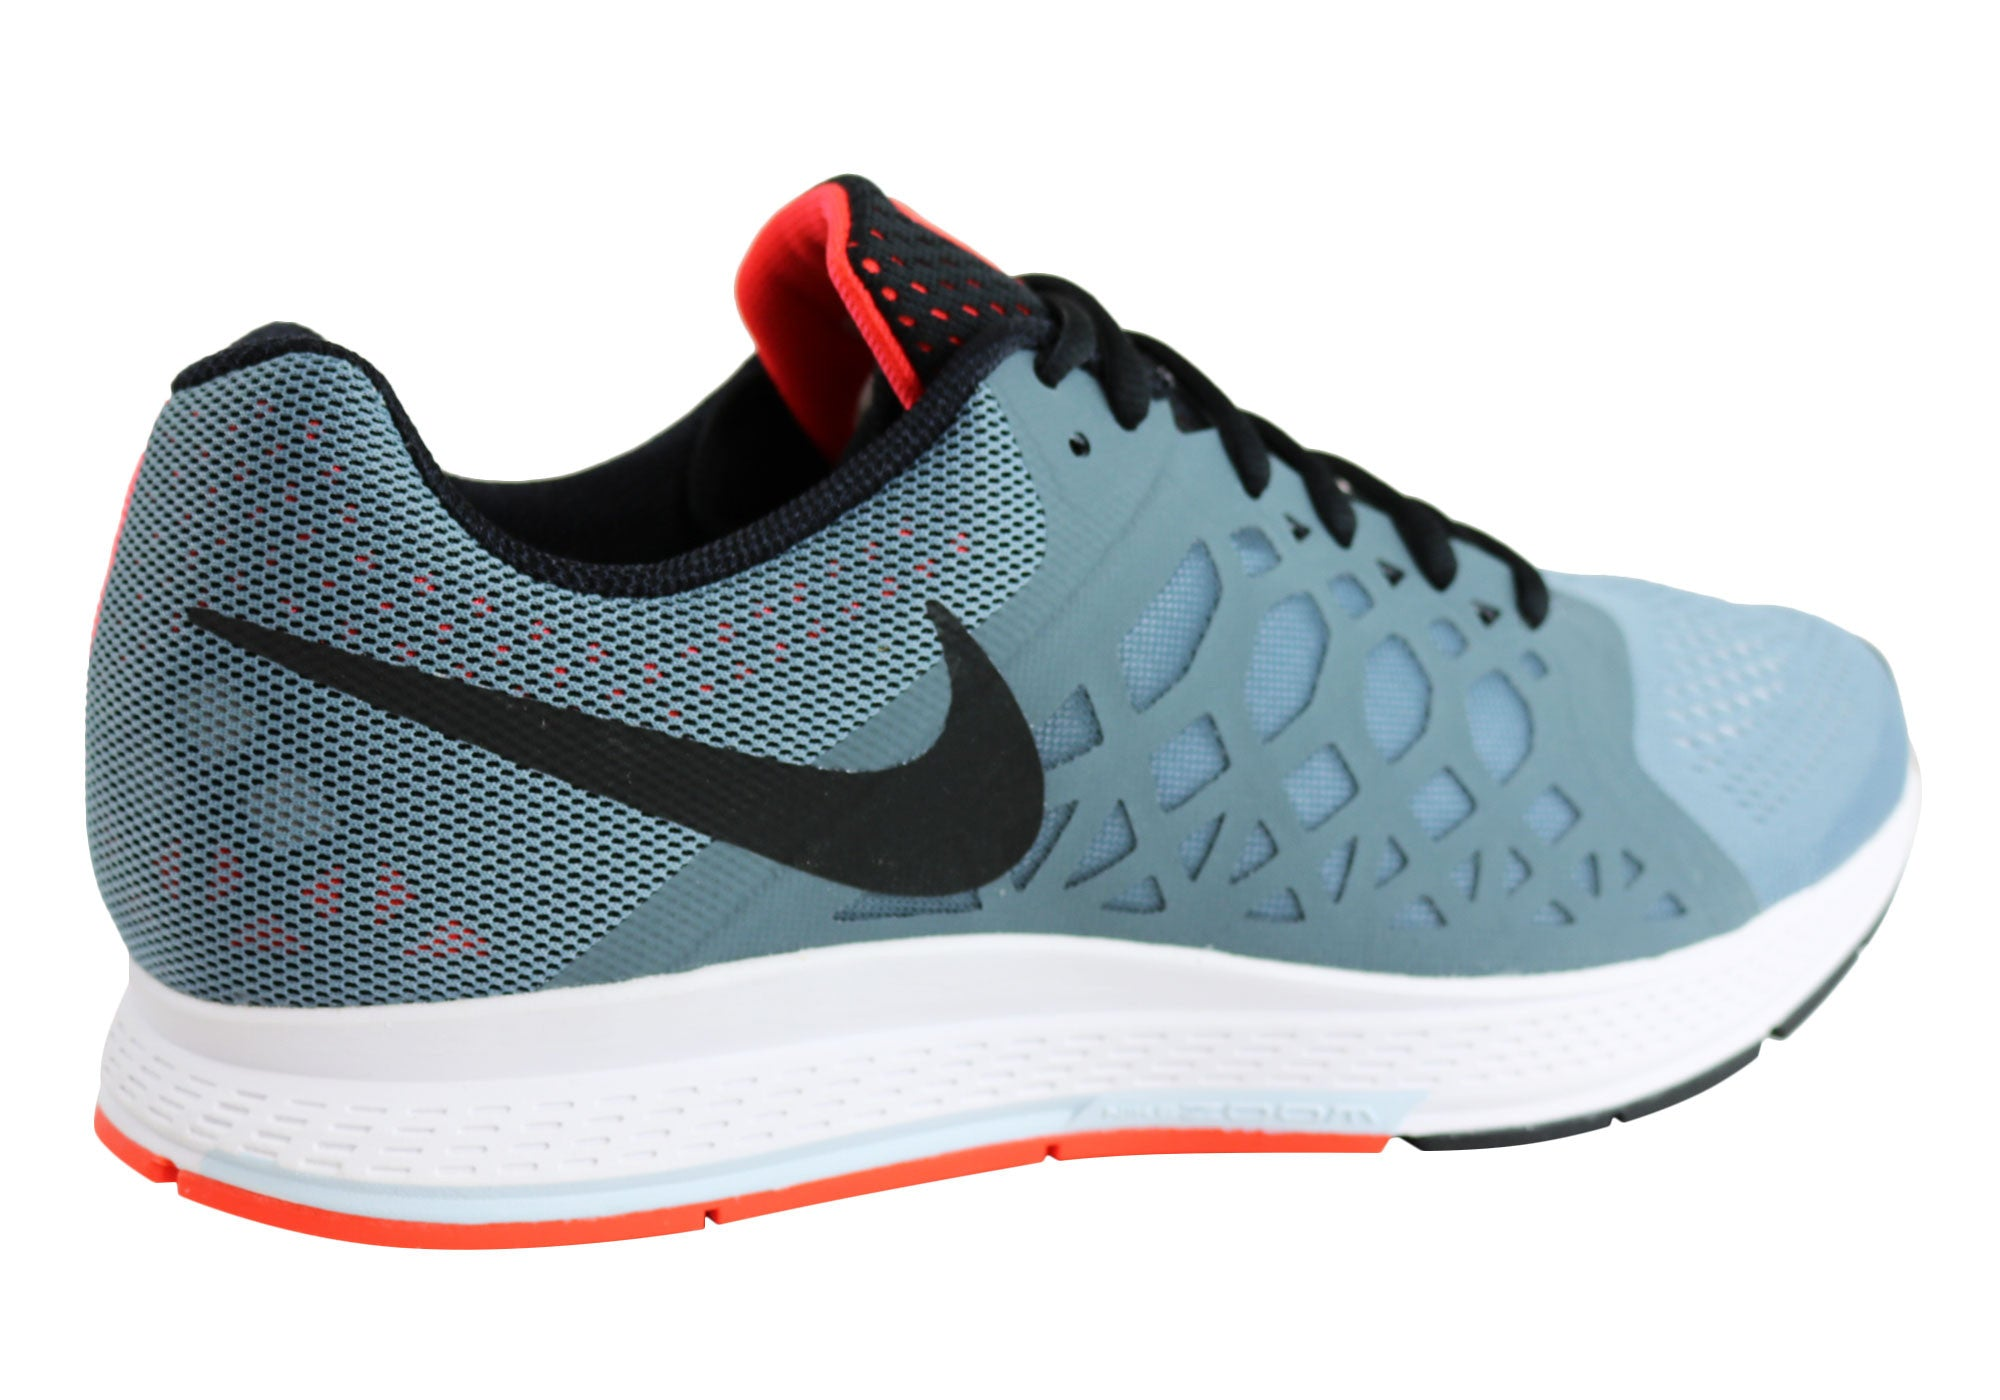 huge selection of c9fd9 dcc94 Nike Air Zoom Pegasus 31 Mens Cushioned Running/Sport Shoes   Brand ...